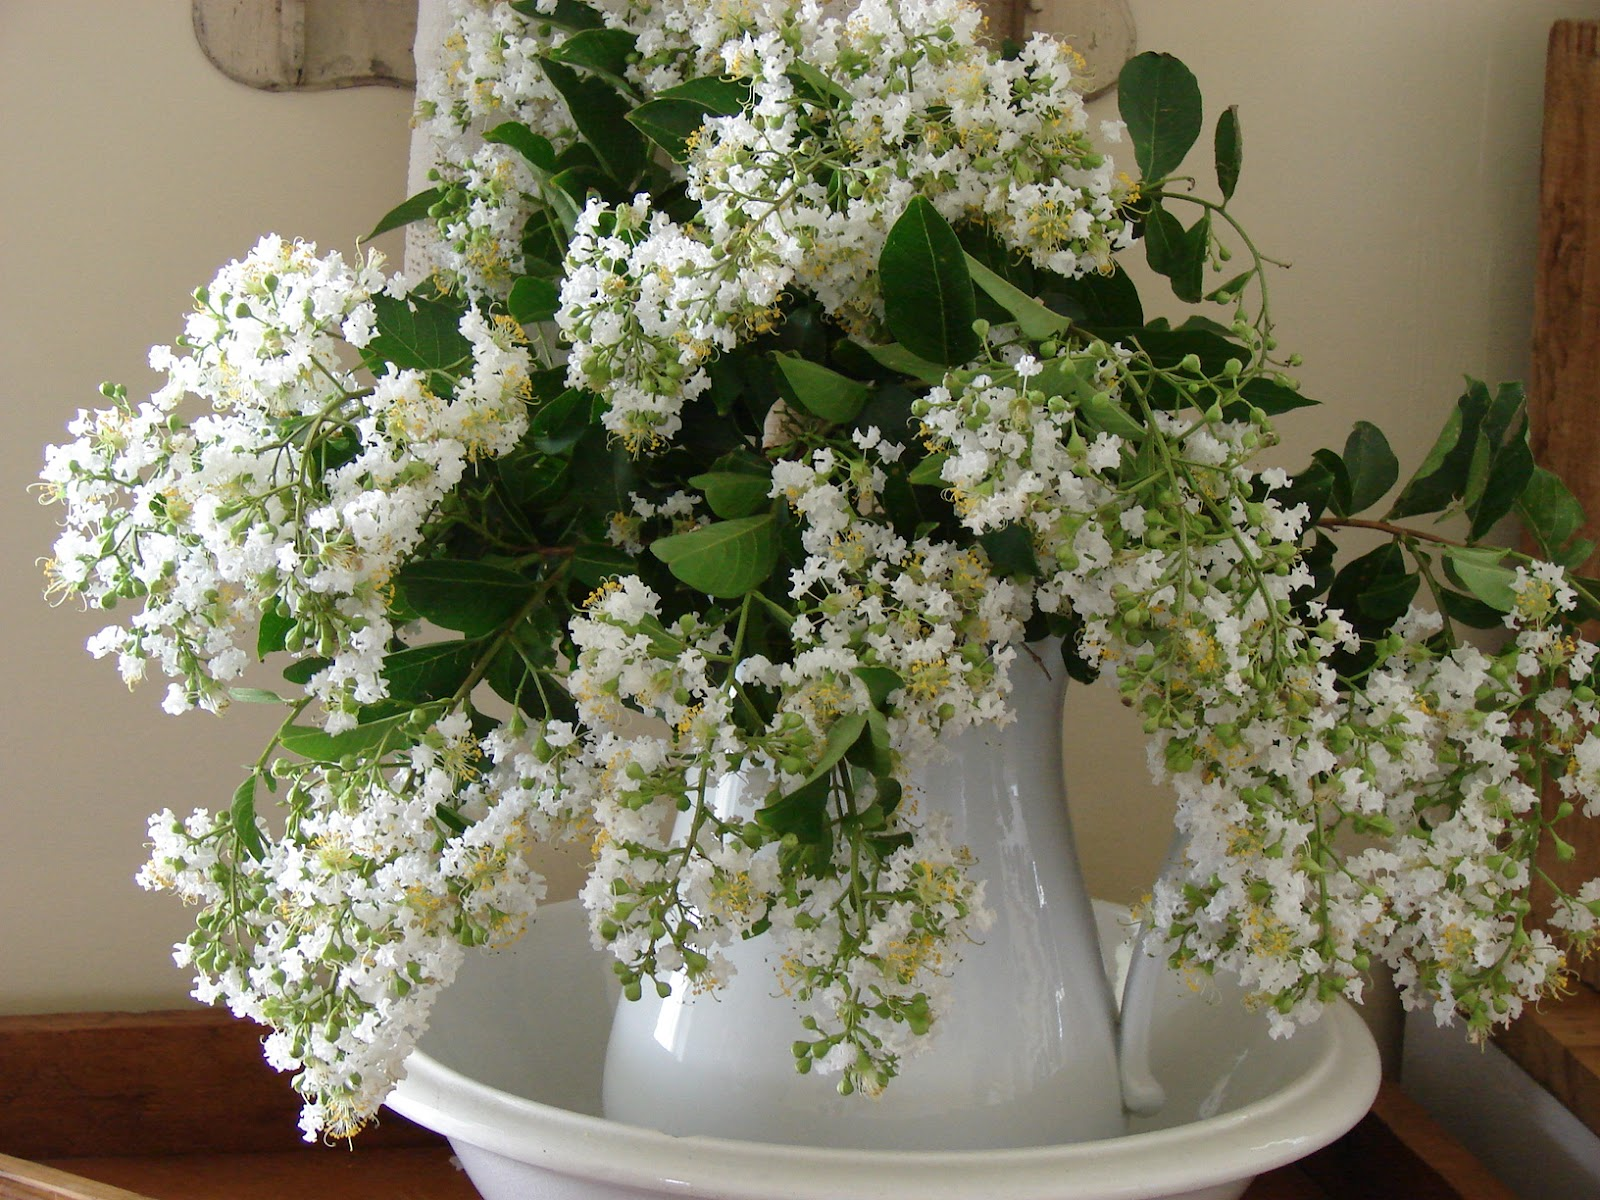 The Country Farm Home: The White Crepe Myrtle